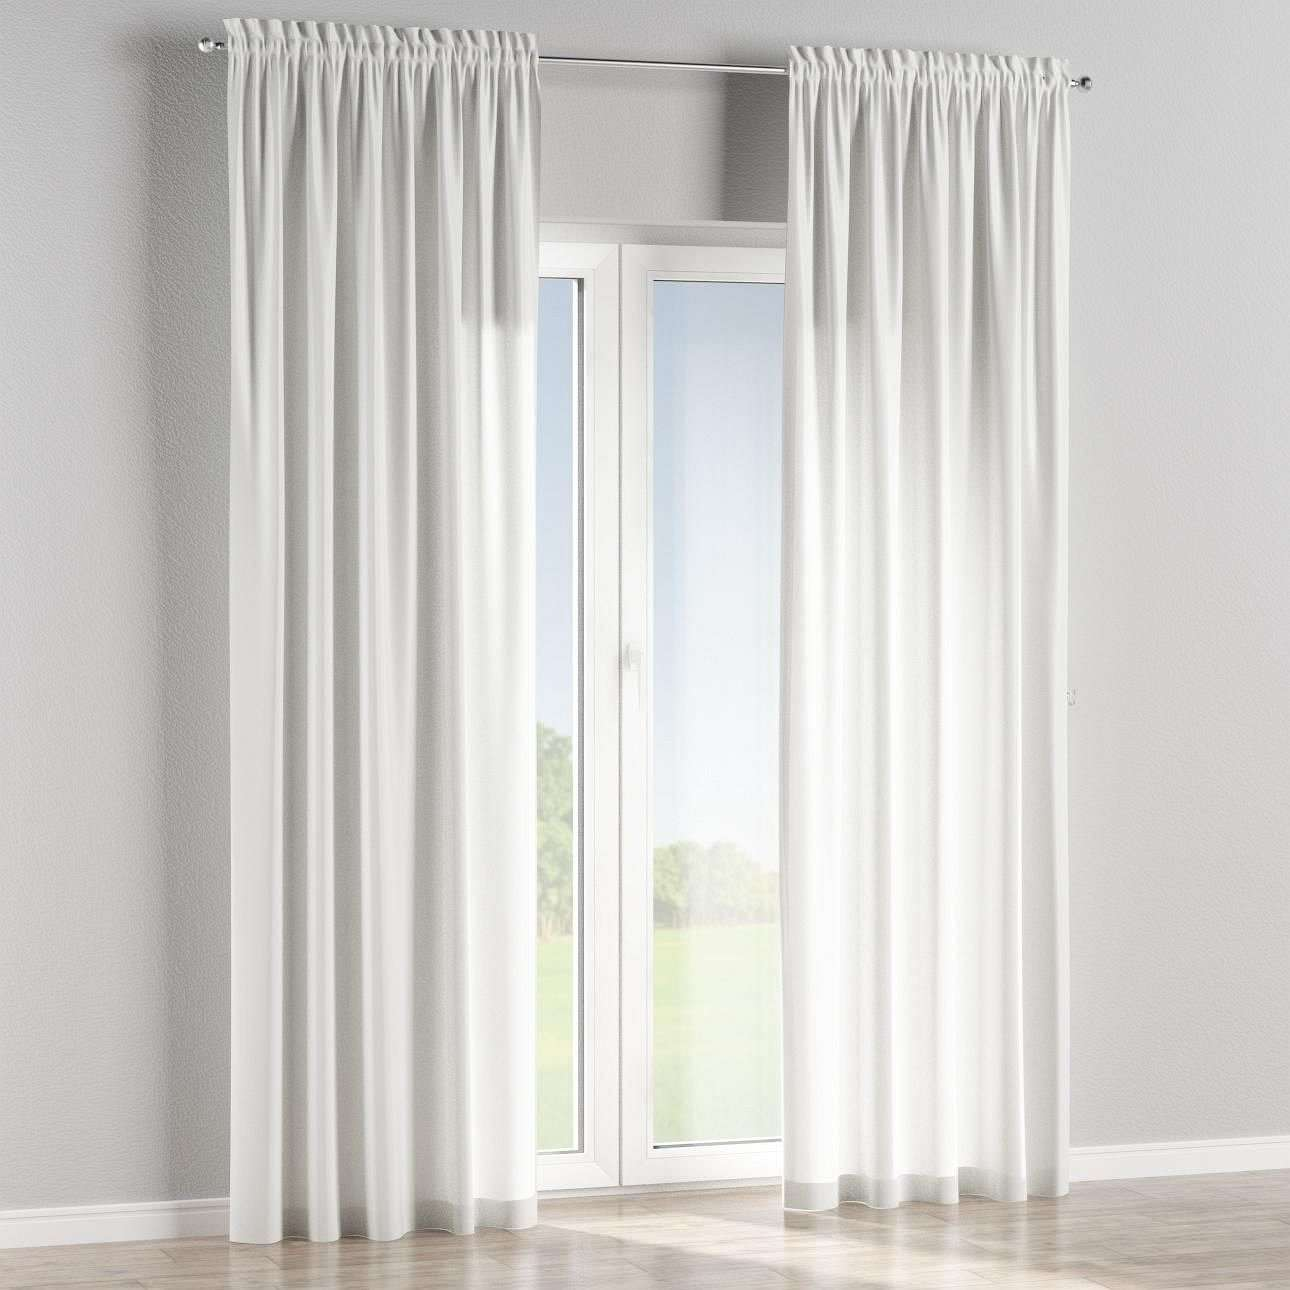 Slot and frill curtains in collection Victoria, fabric: 130-06